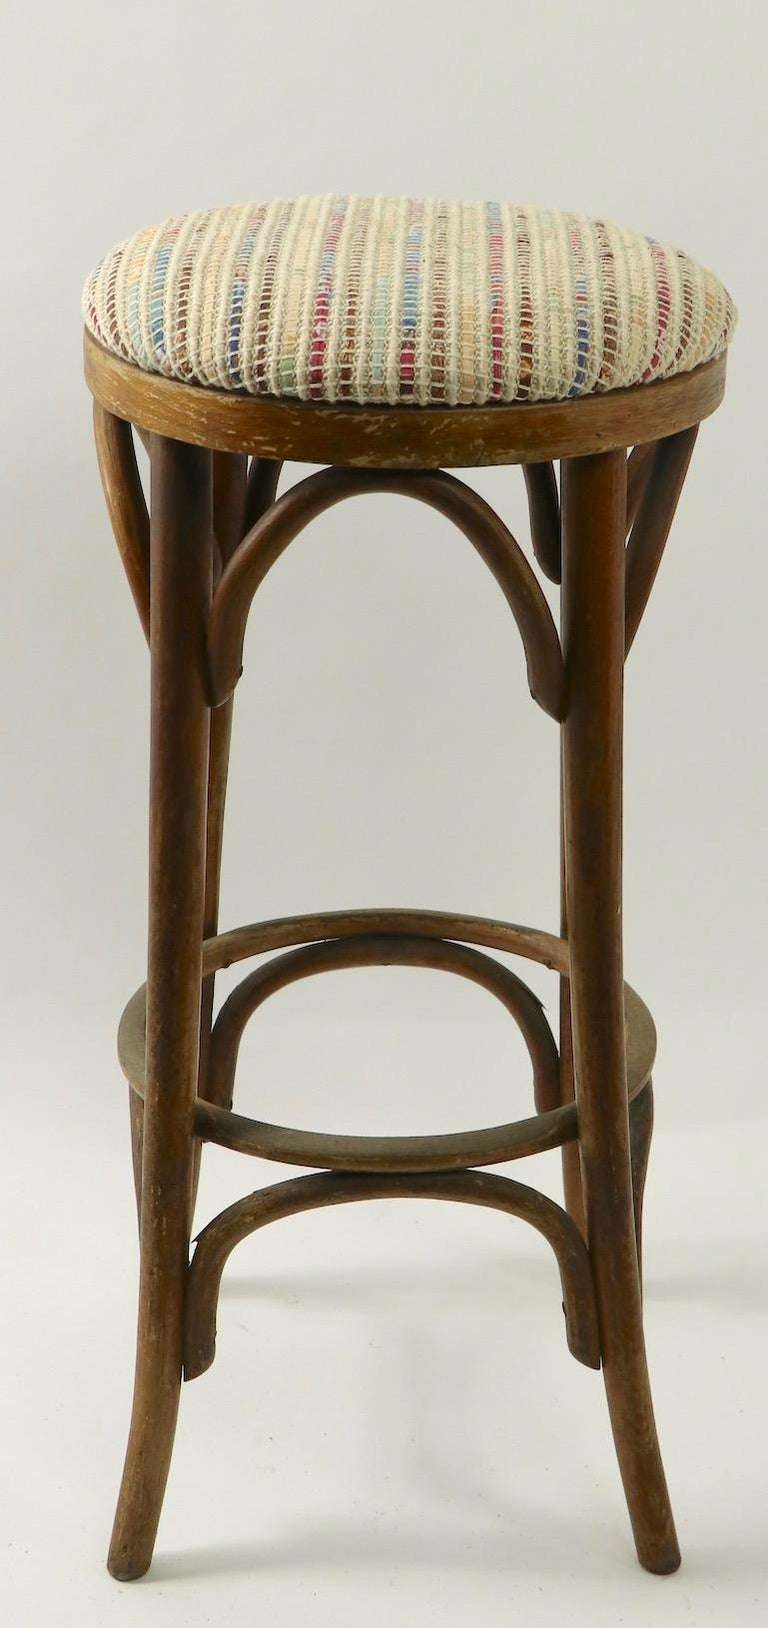 Austrian Bentwood Stools Attributed to Thonet 3 Available For Sale